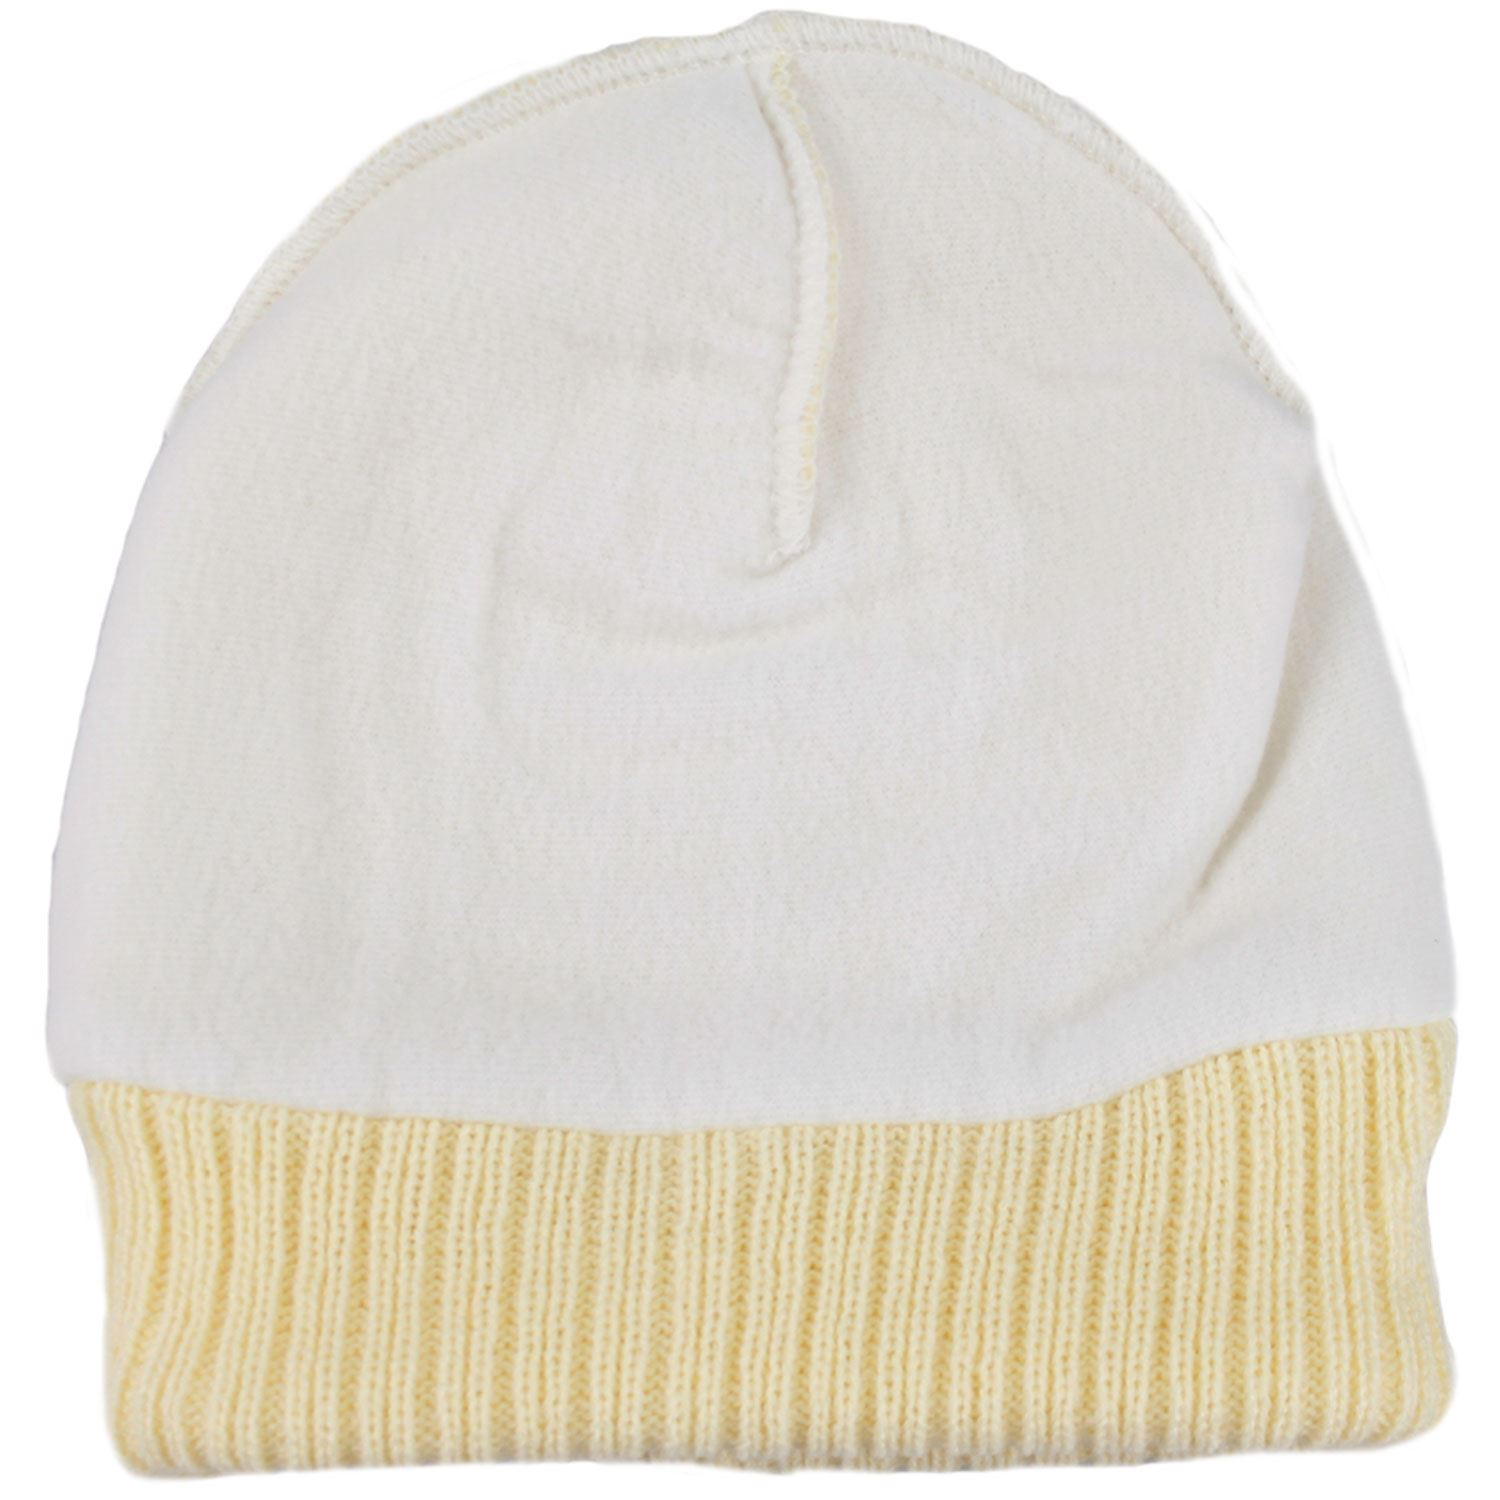 New Ladies Fleece Lined Hat Woolly Thinsulate Winter ...